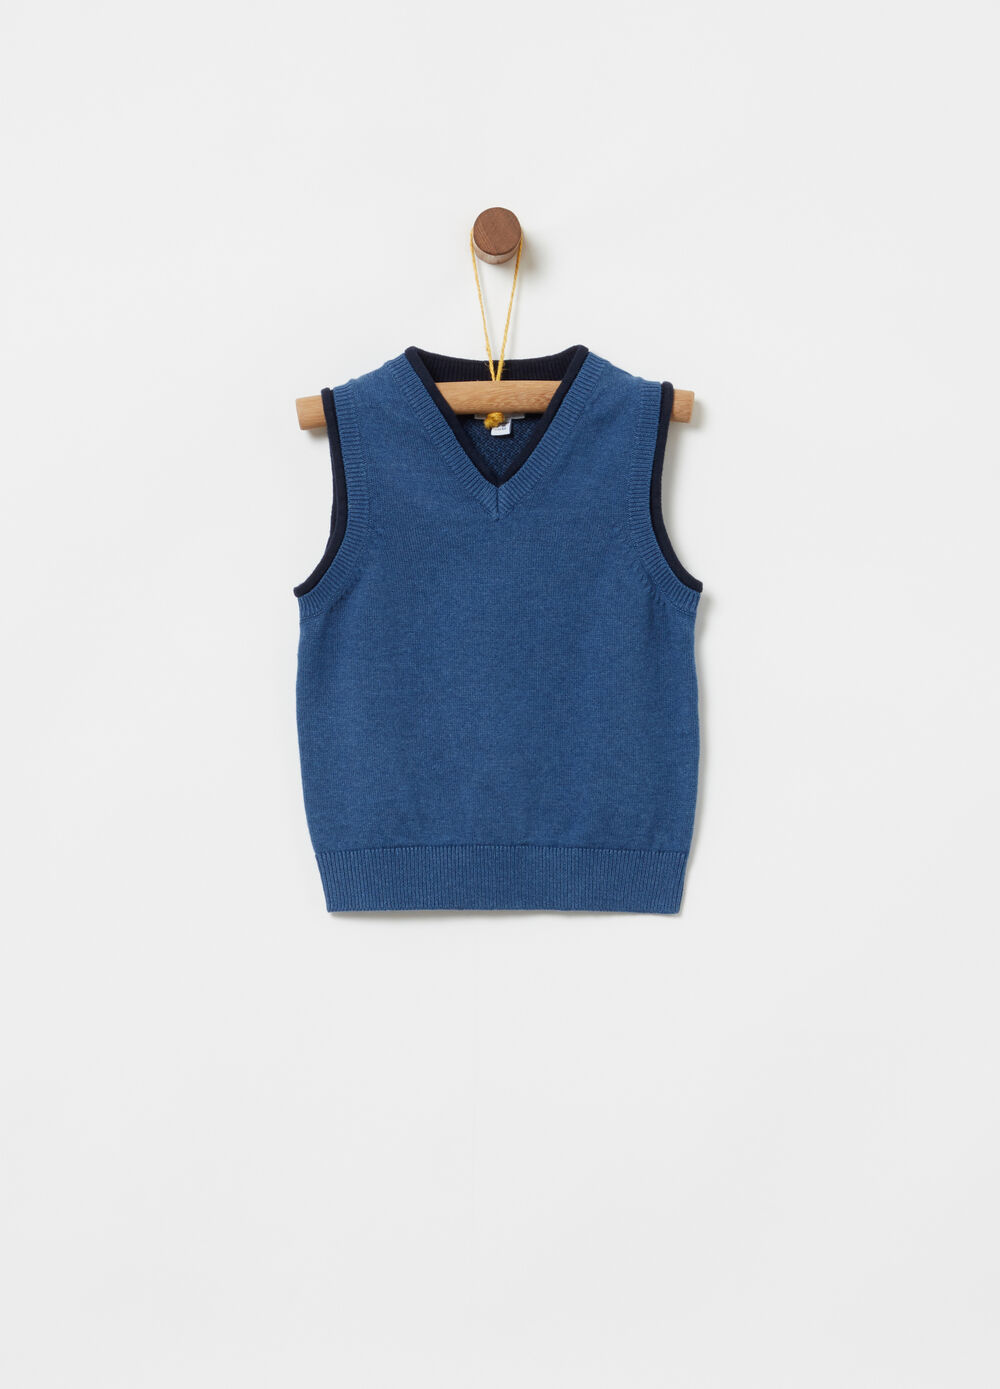 Knitted waistcoat in 100% cotton with inserts and ribbing